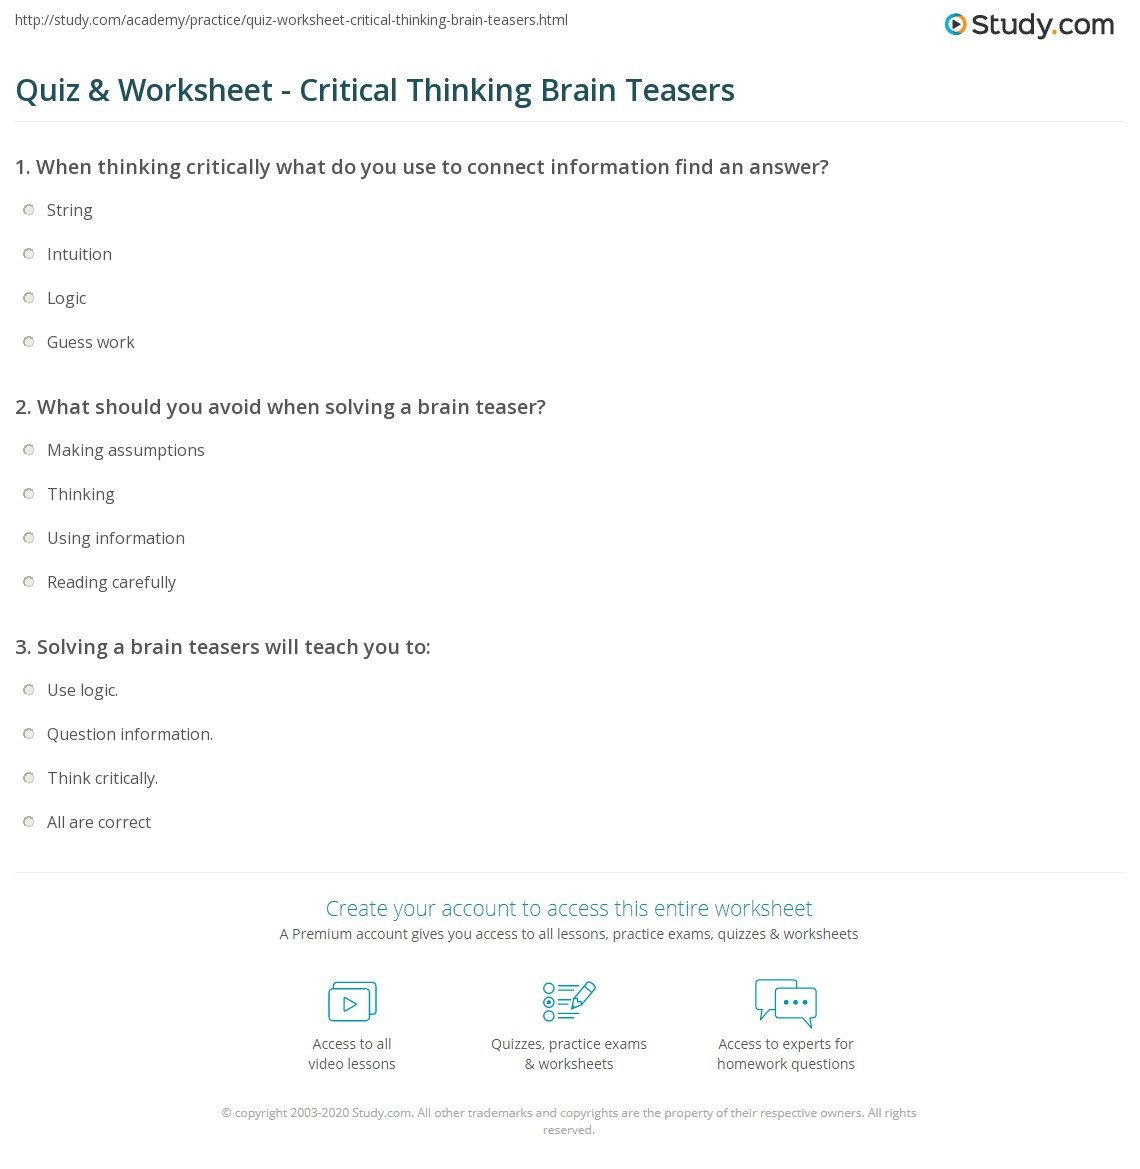 Brain Teaser Worksheets Quiz & Worksheet Critical Thinking Brain Teasers